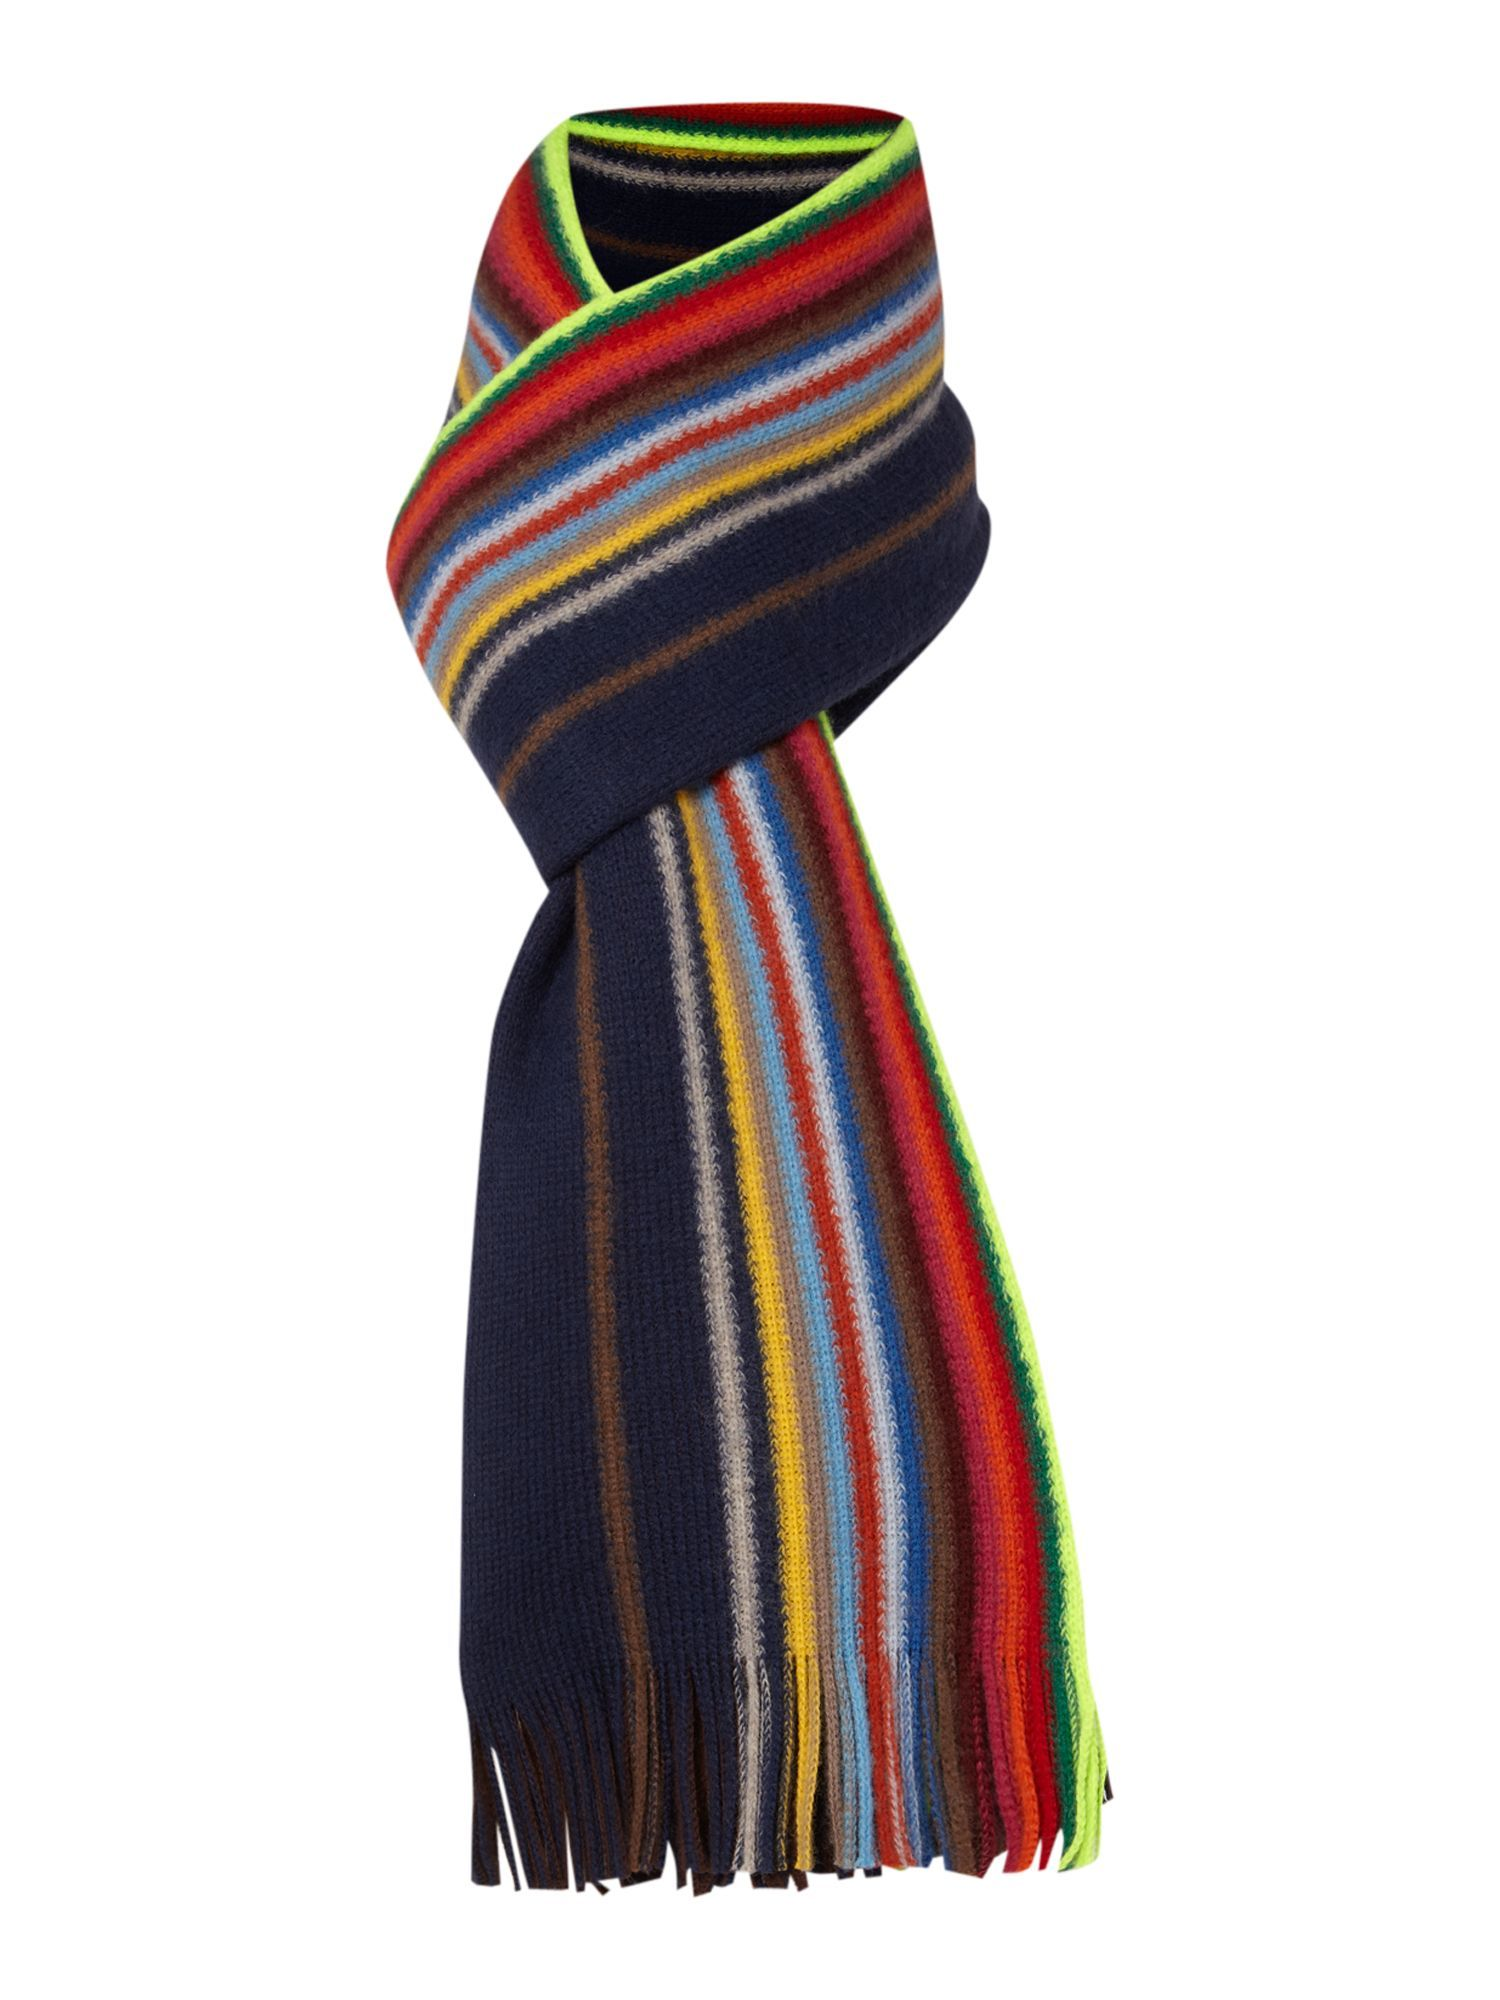 ca4f25089accb Paul smith Reversible Striped Scarf in Multicolor for Men (navy ...